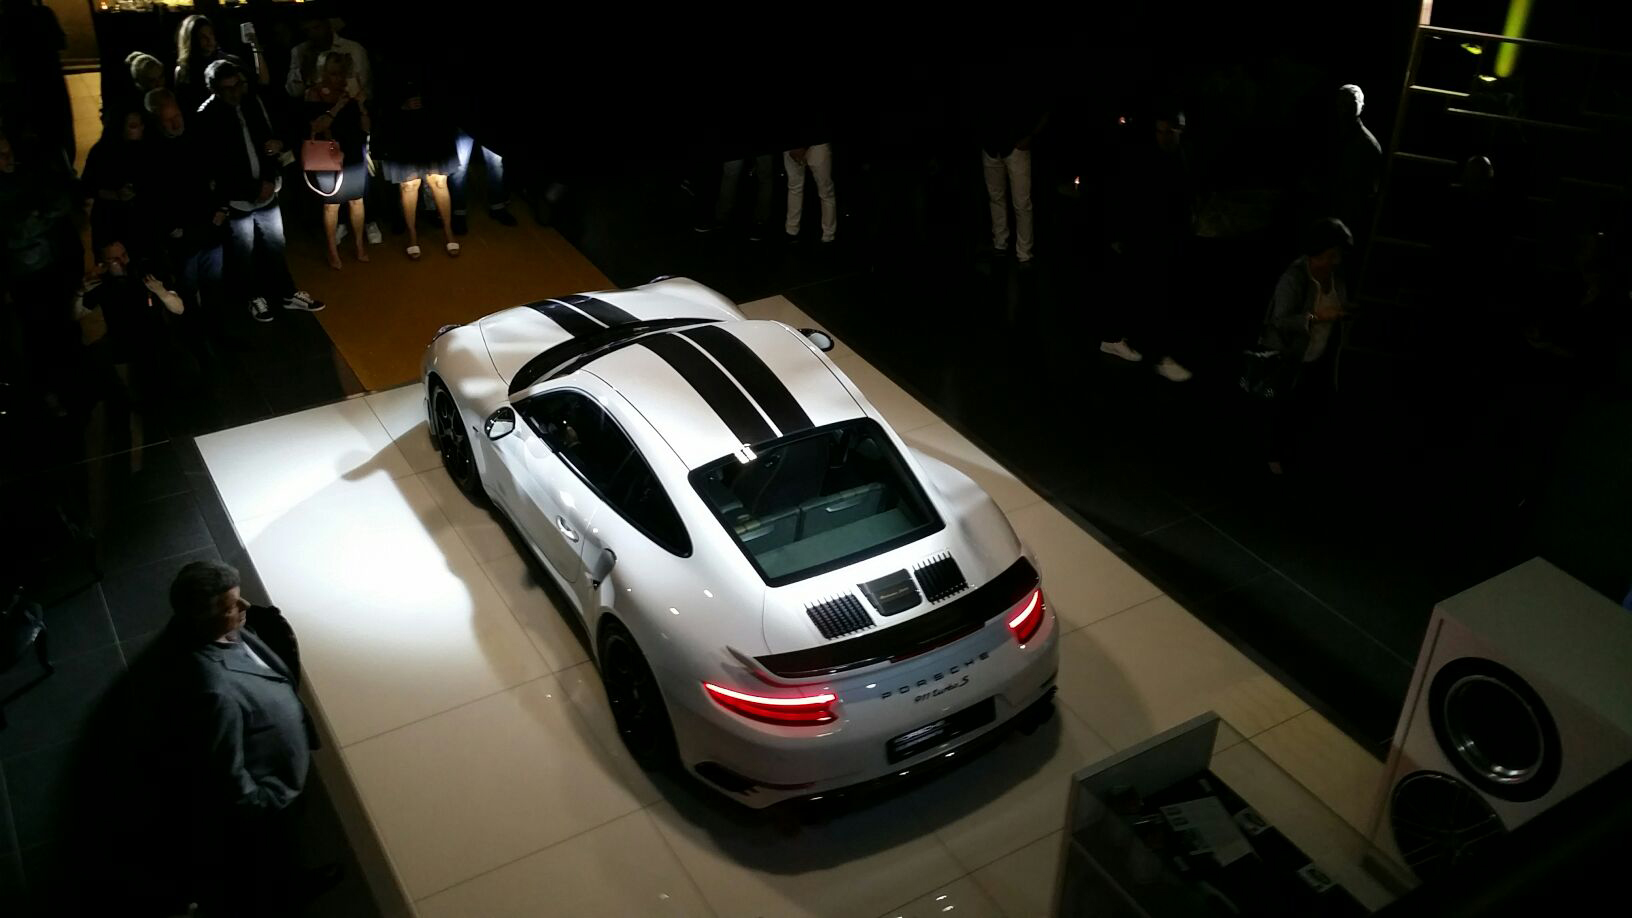 vid o de la soir e pour la sortie de la porsche 911 turbo s aucop. Black Bedroom Furniture Sets. Home Design Ideas